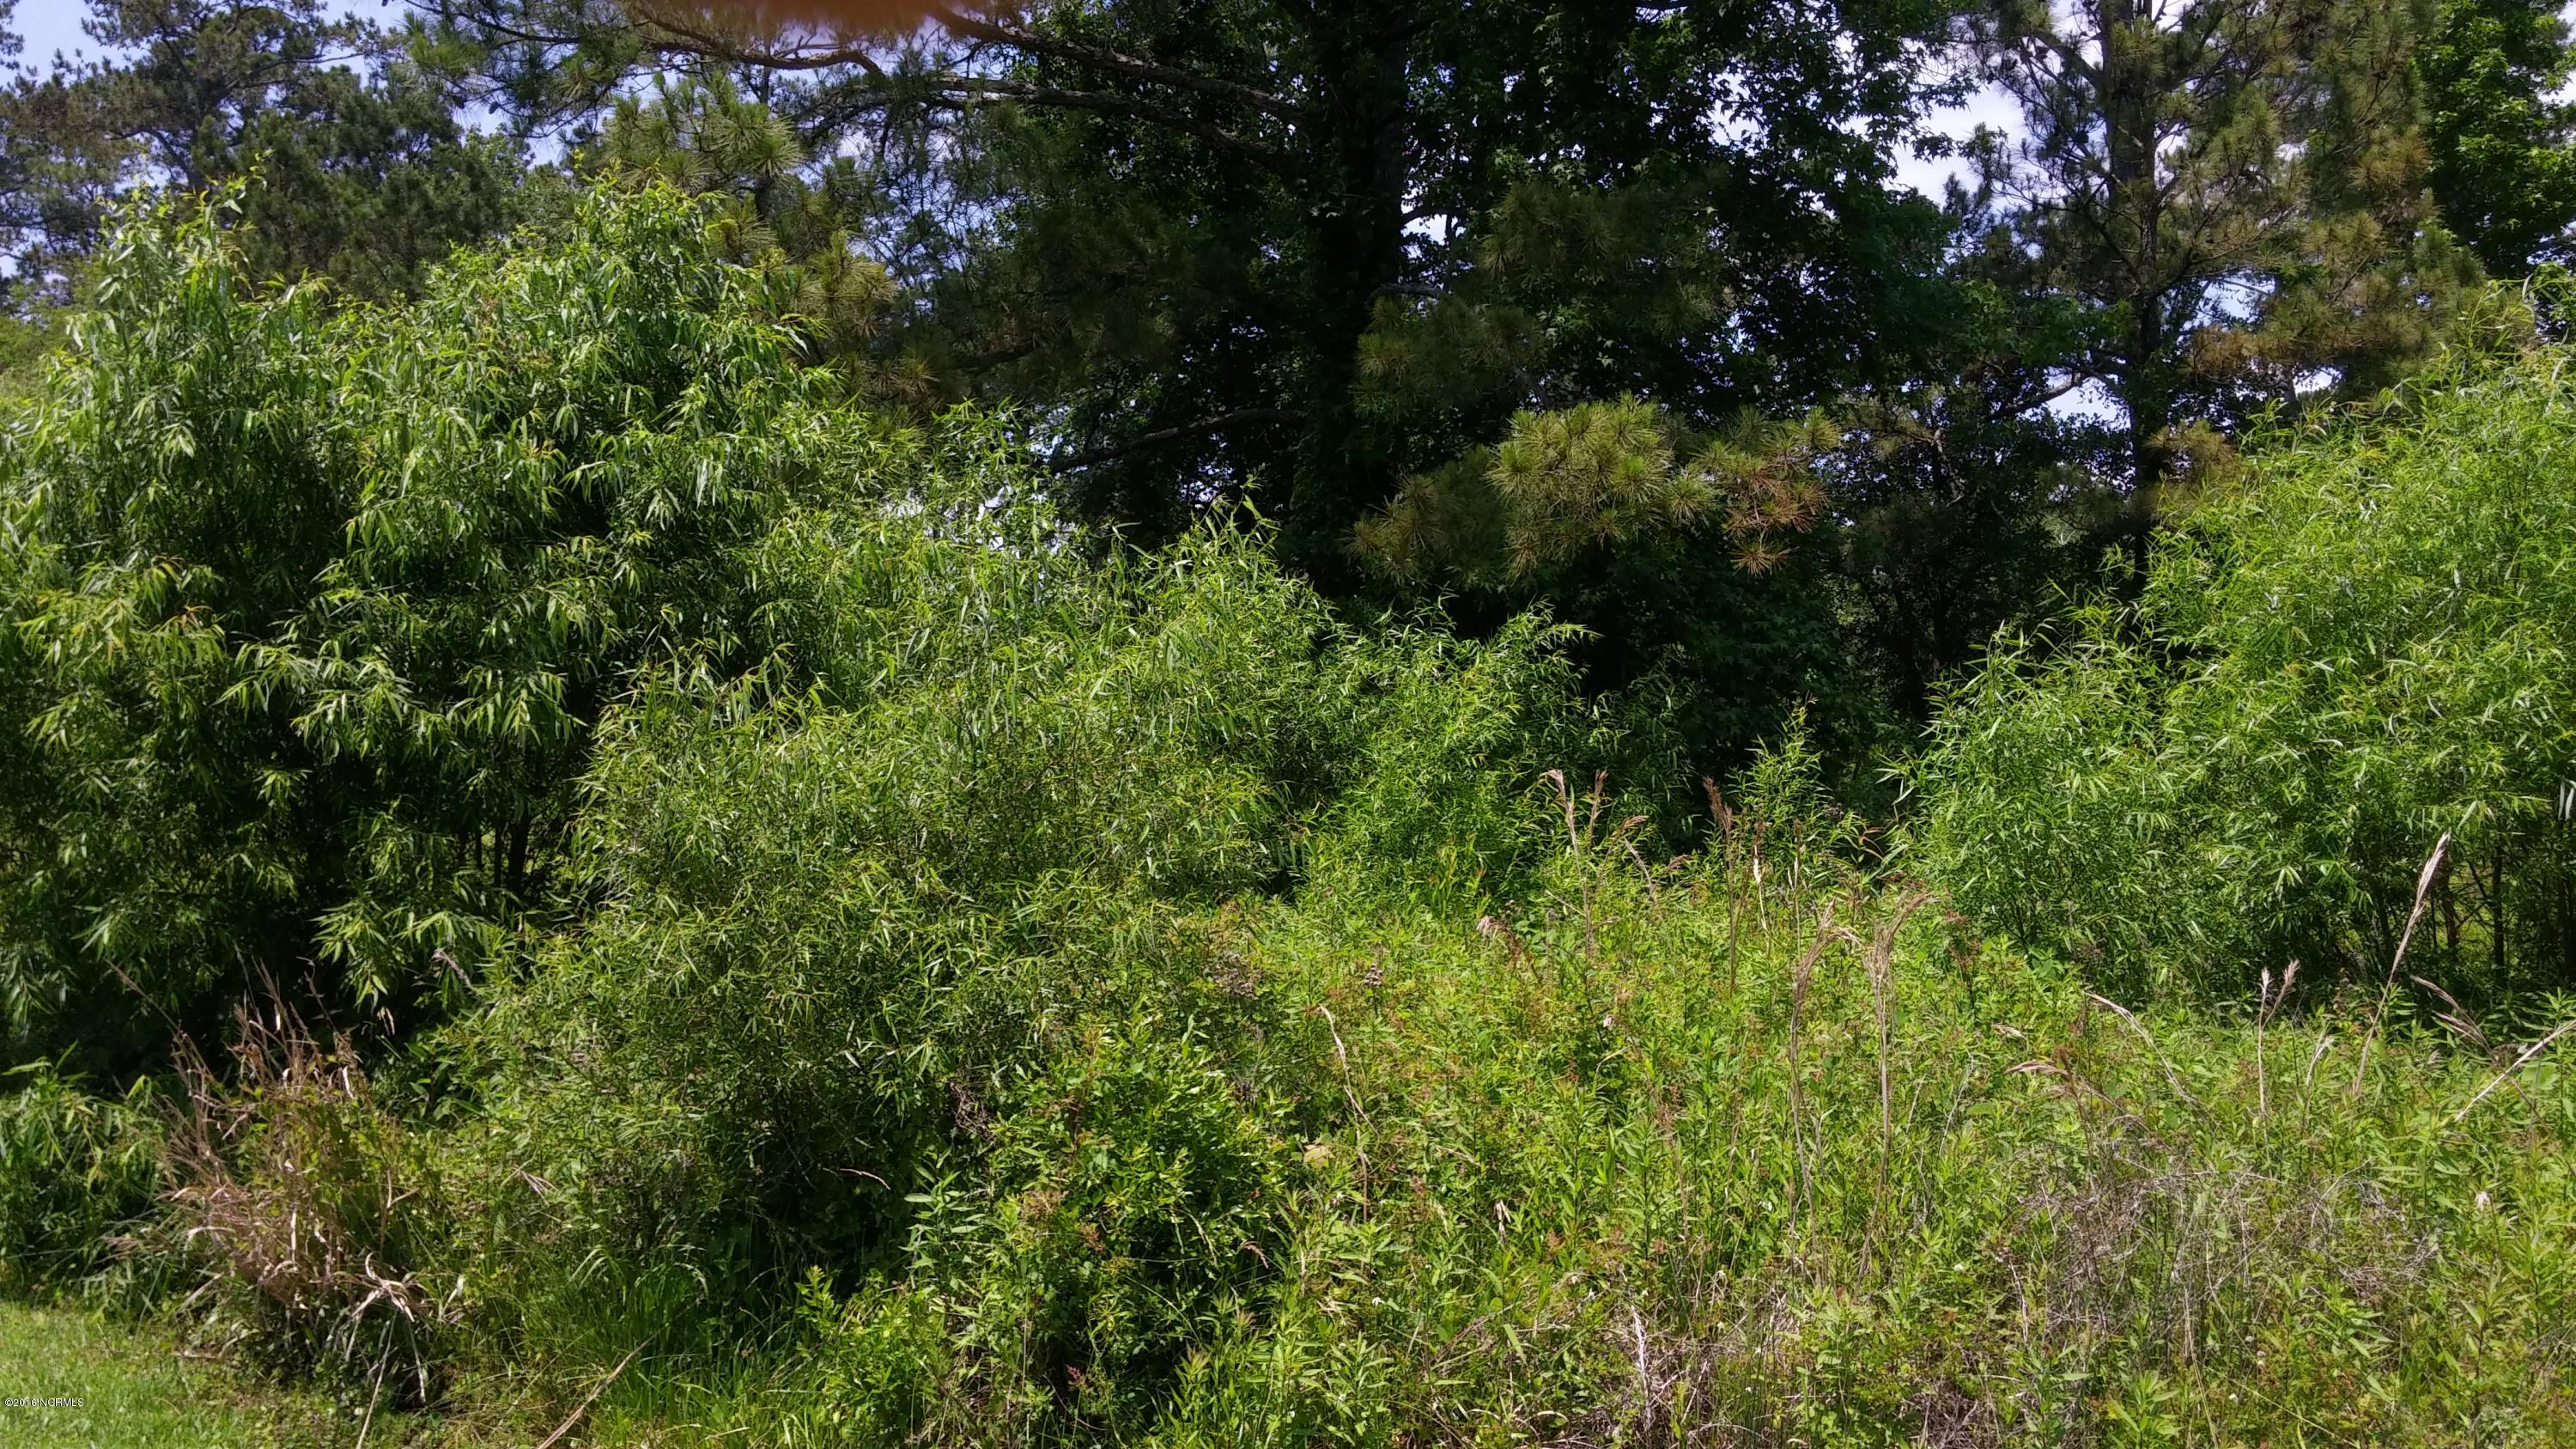 327 Chadwick Shores Drive, Sneads Ferry, North Carolina, ,Undeveloped,For sale,Chadwick Shores,100010096